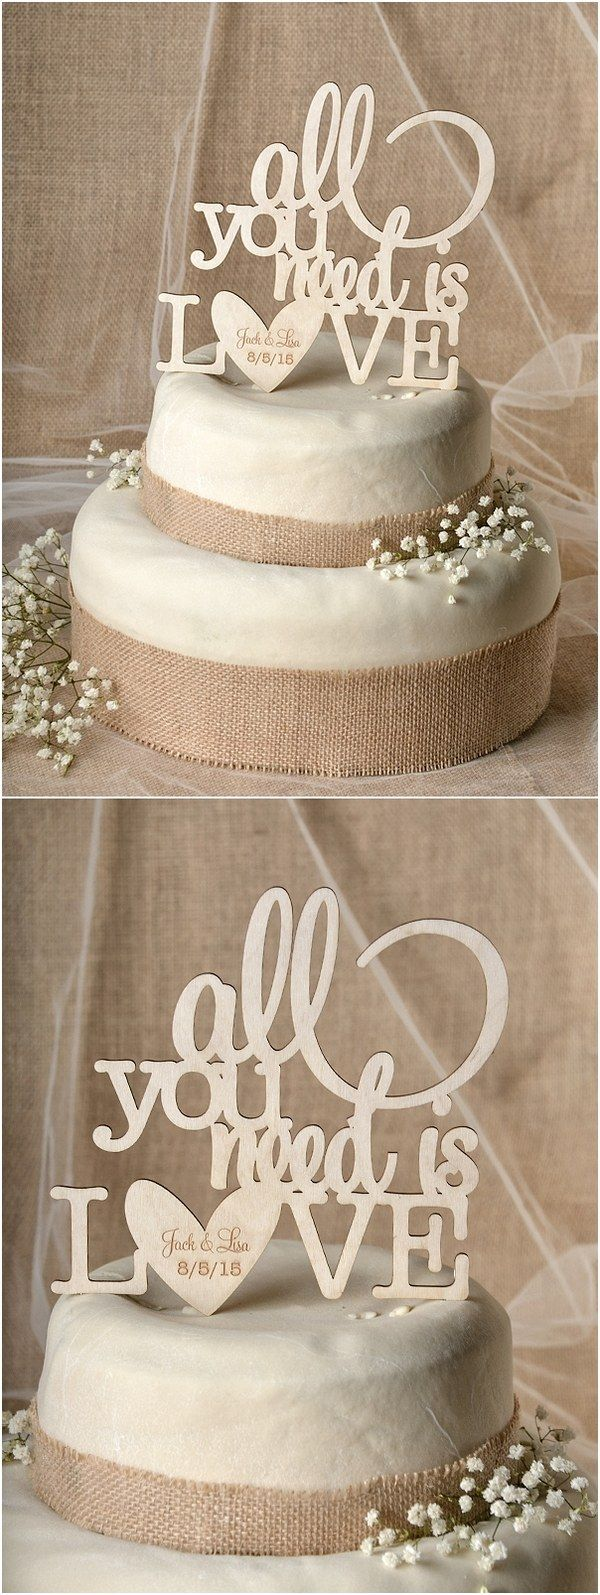 Country wedding cakes pictures - Awesome 57 Romantic Unique Wedding Cake Toppers